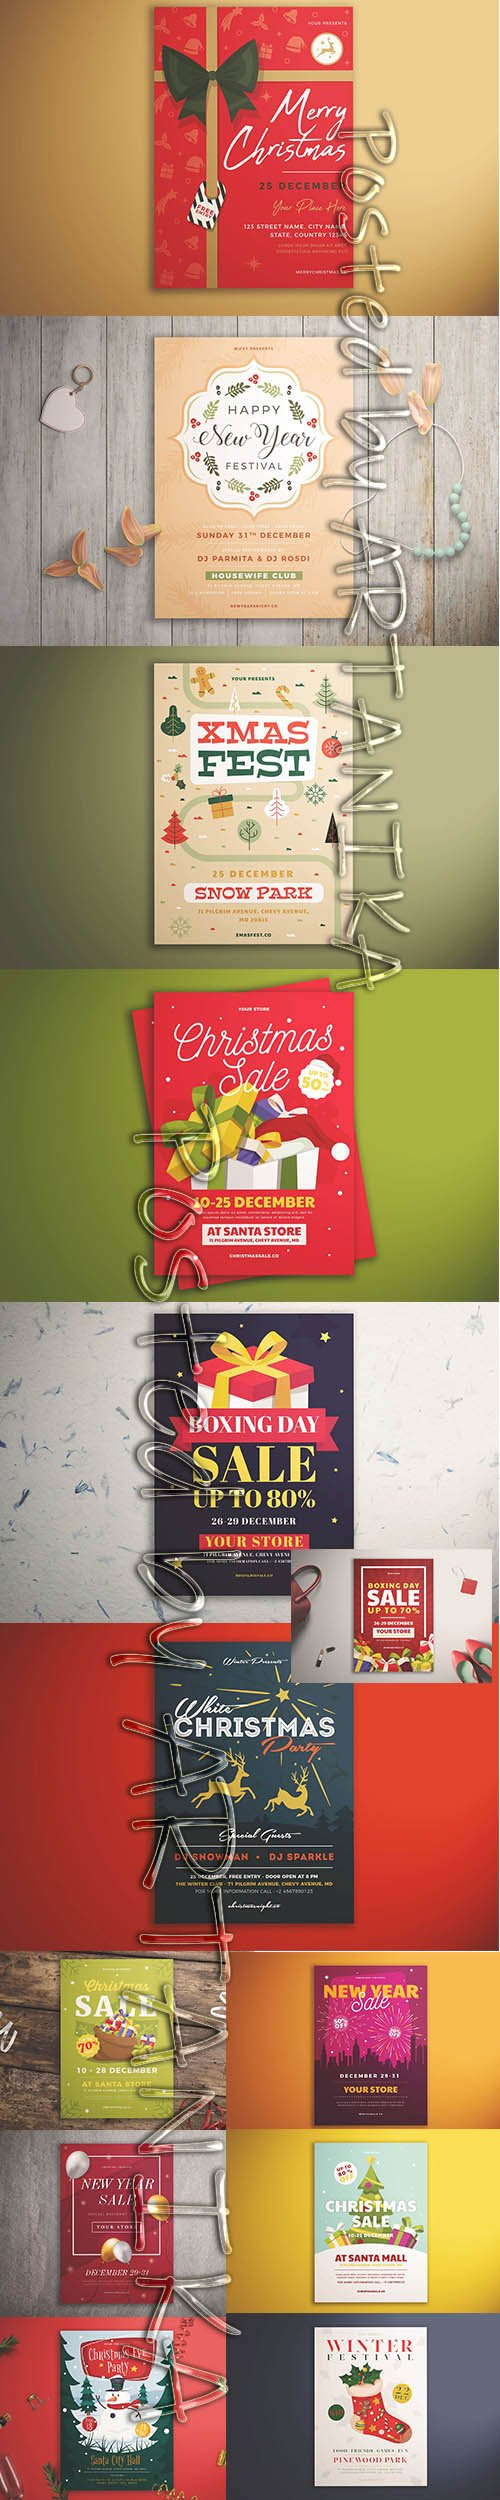 Christmas and New Year Sale Flyer Template Pack